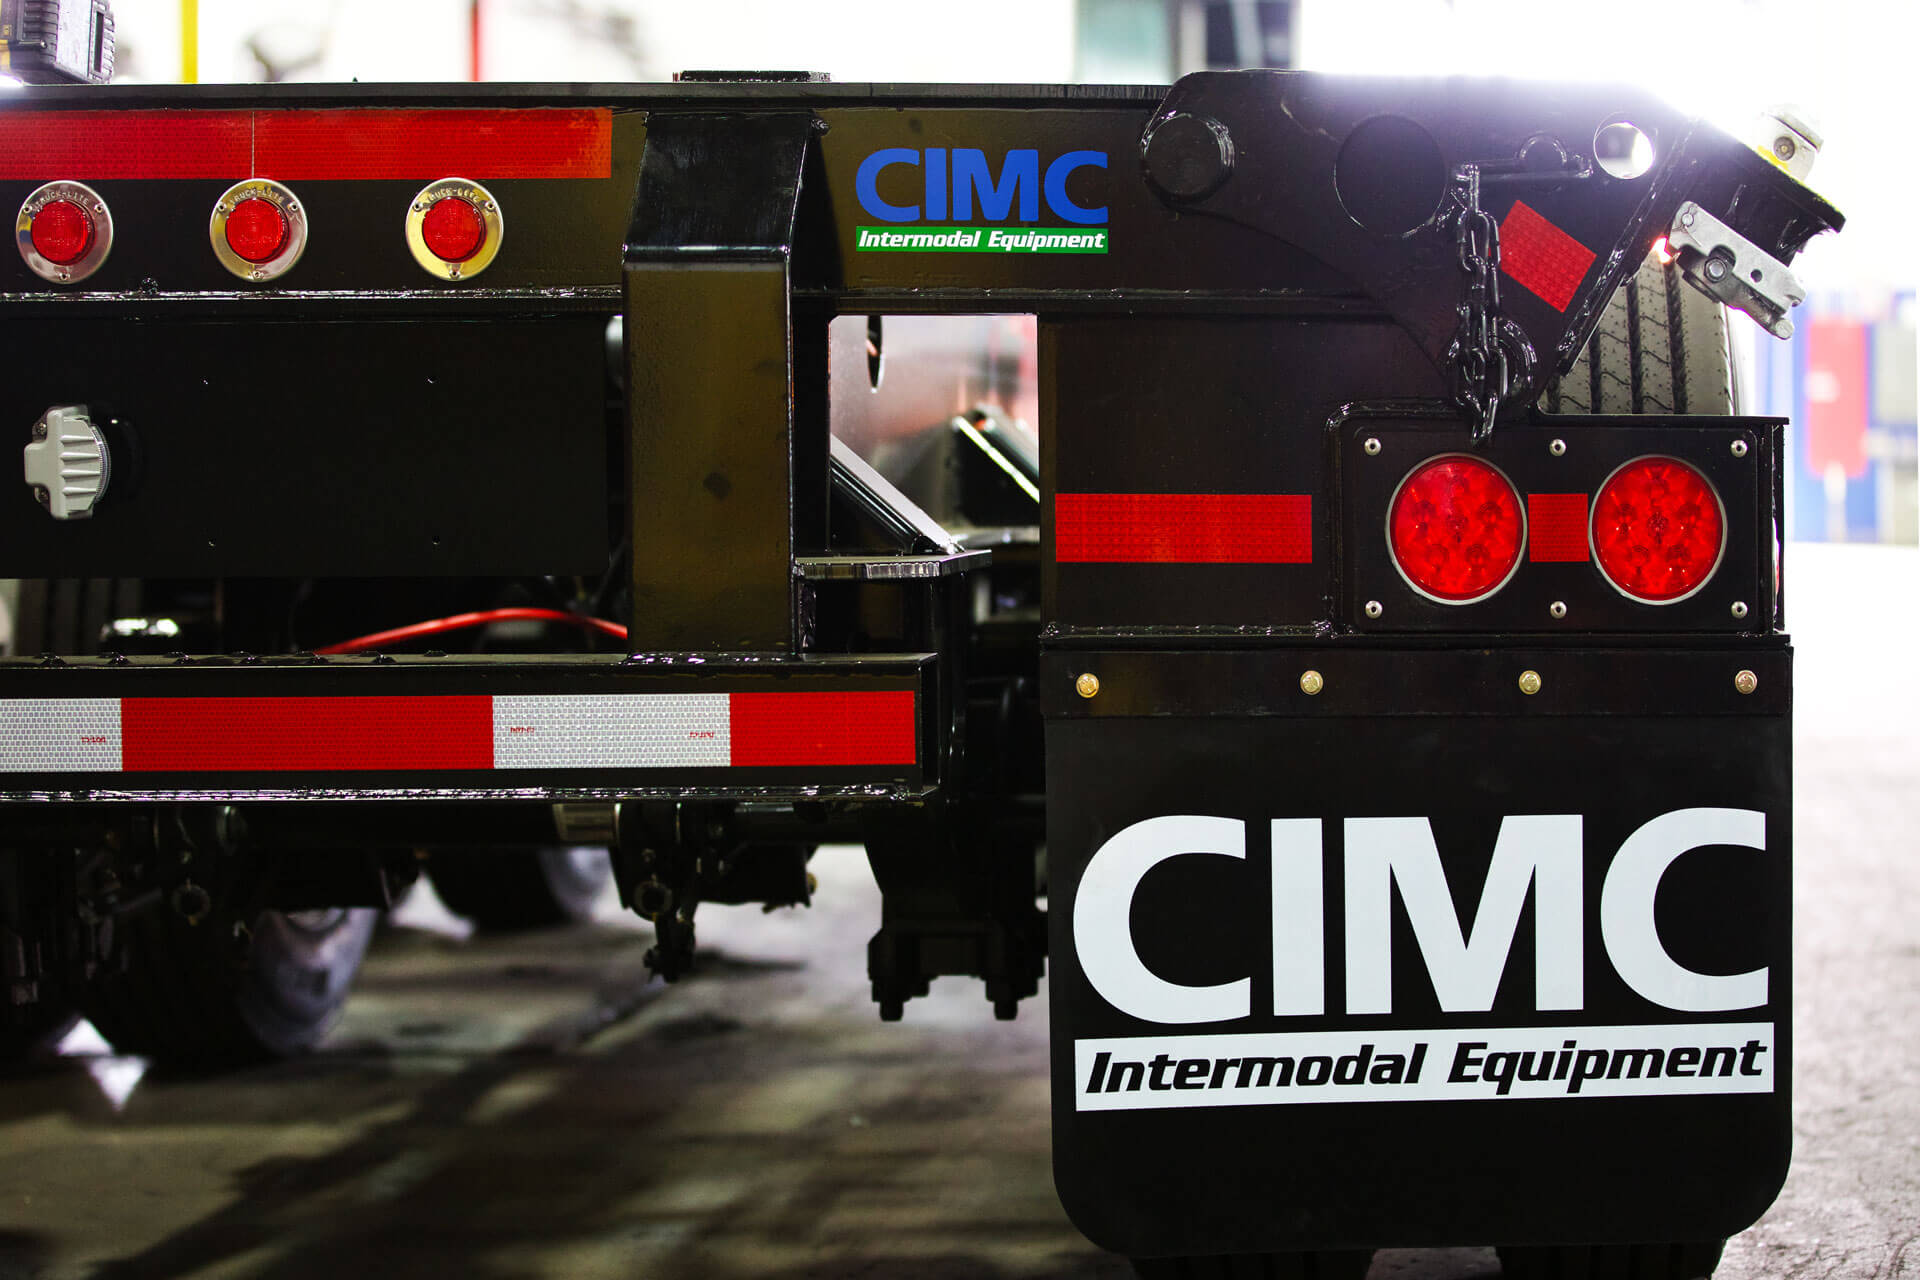 CIMC CONTAINER PARTS FILE TYPE DOWNLOAD